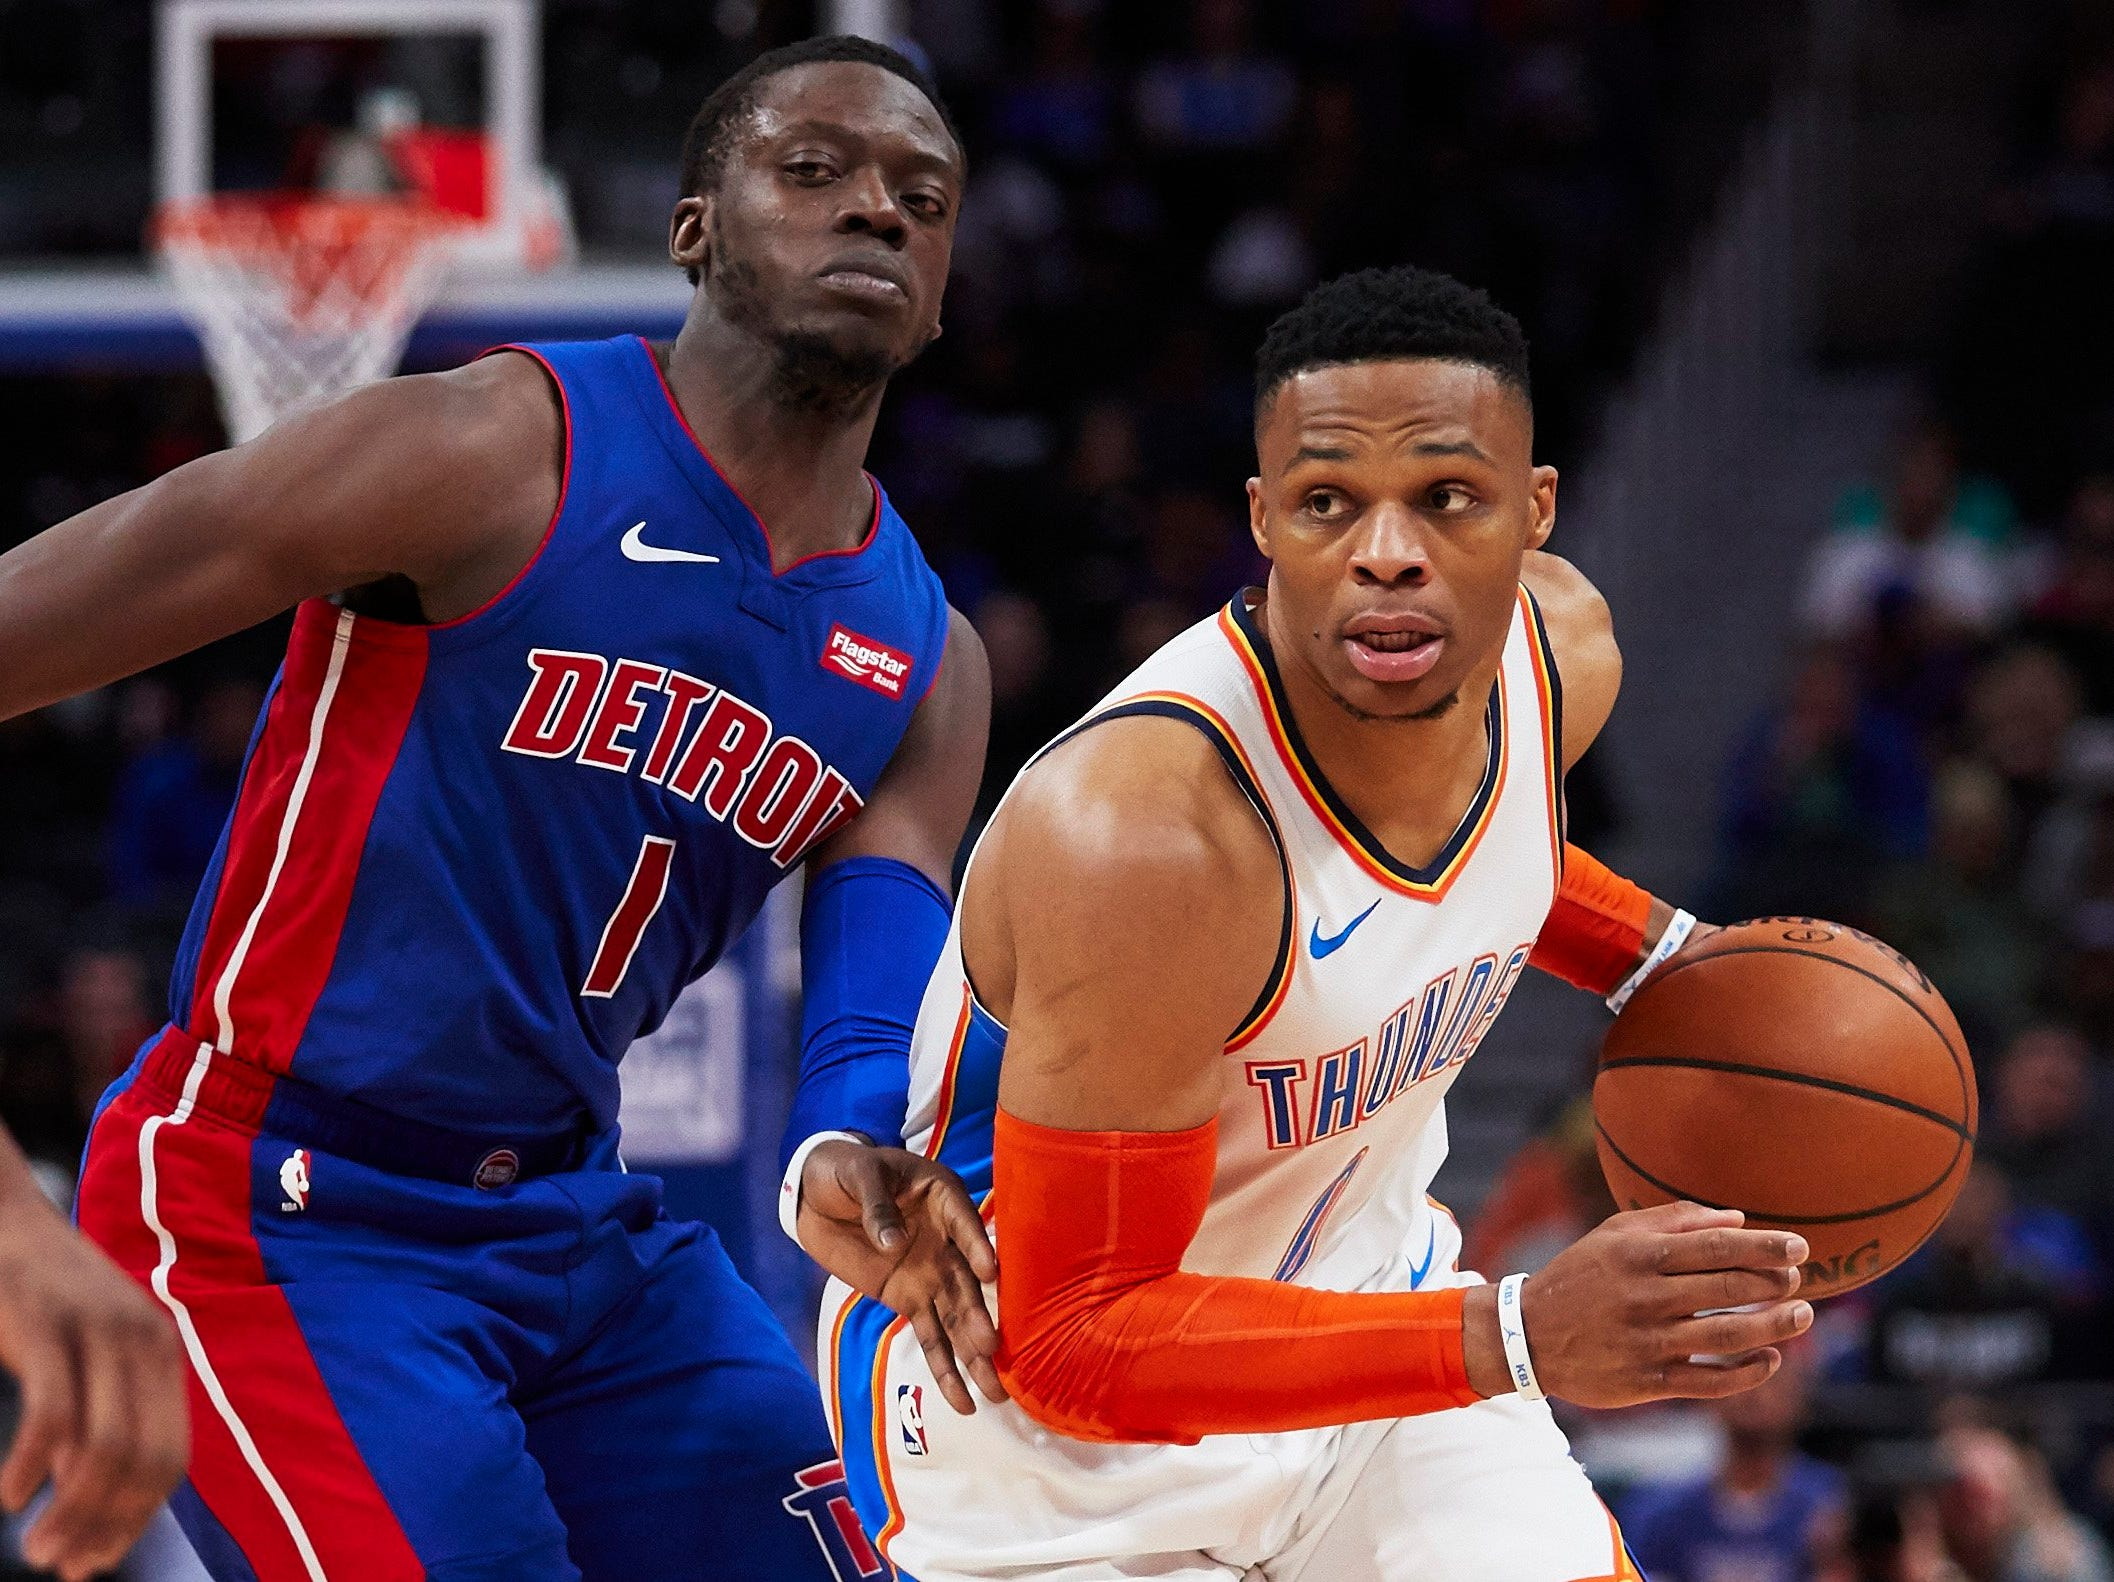 Oklahoma City Thunder guard Russell Westbrook (0) defended by on Detroit Pistons guard Reggie Jackson (1) in the first half at Little Caesars Arena.